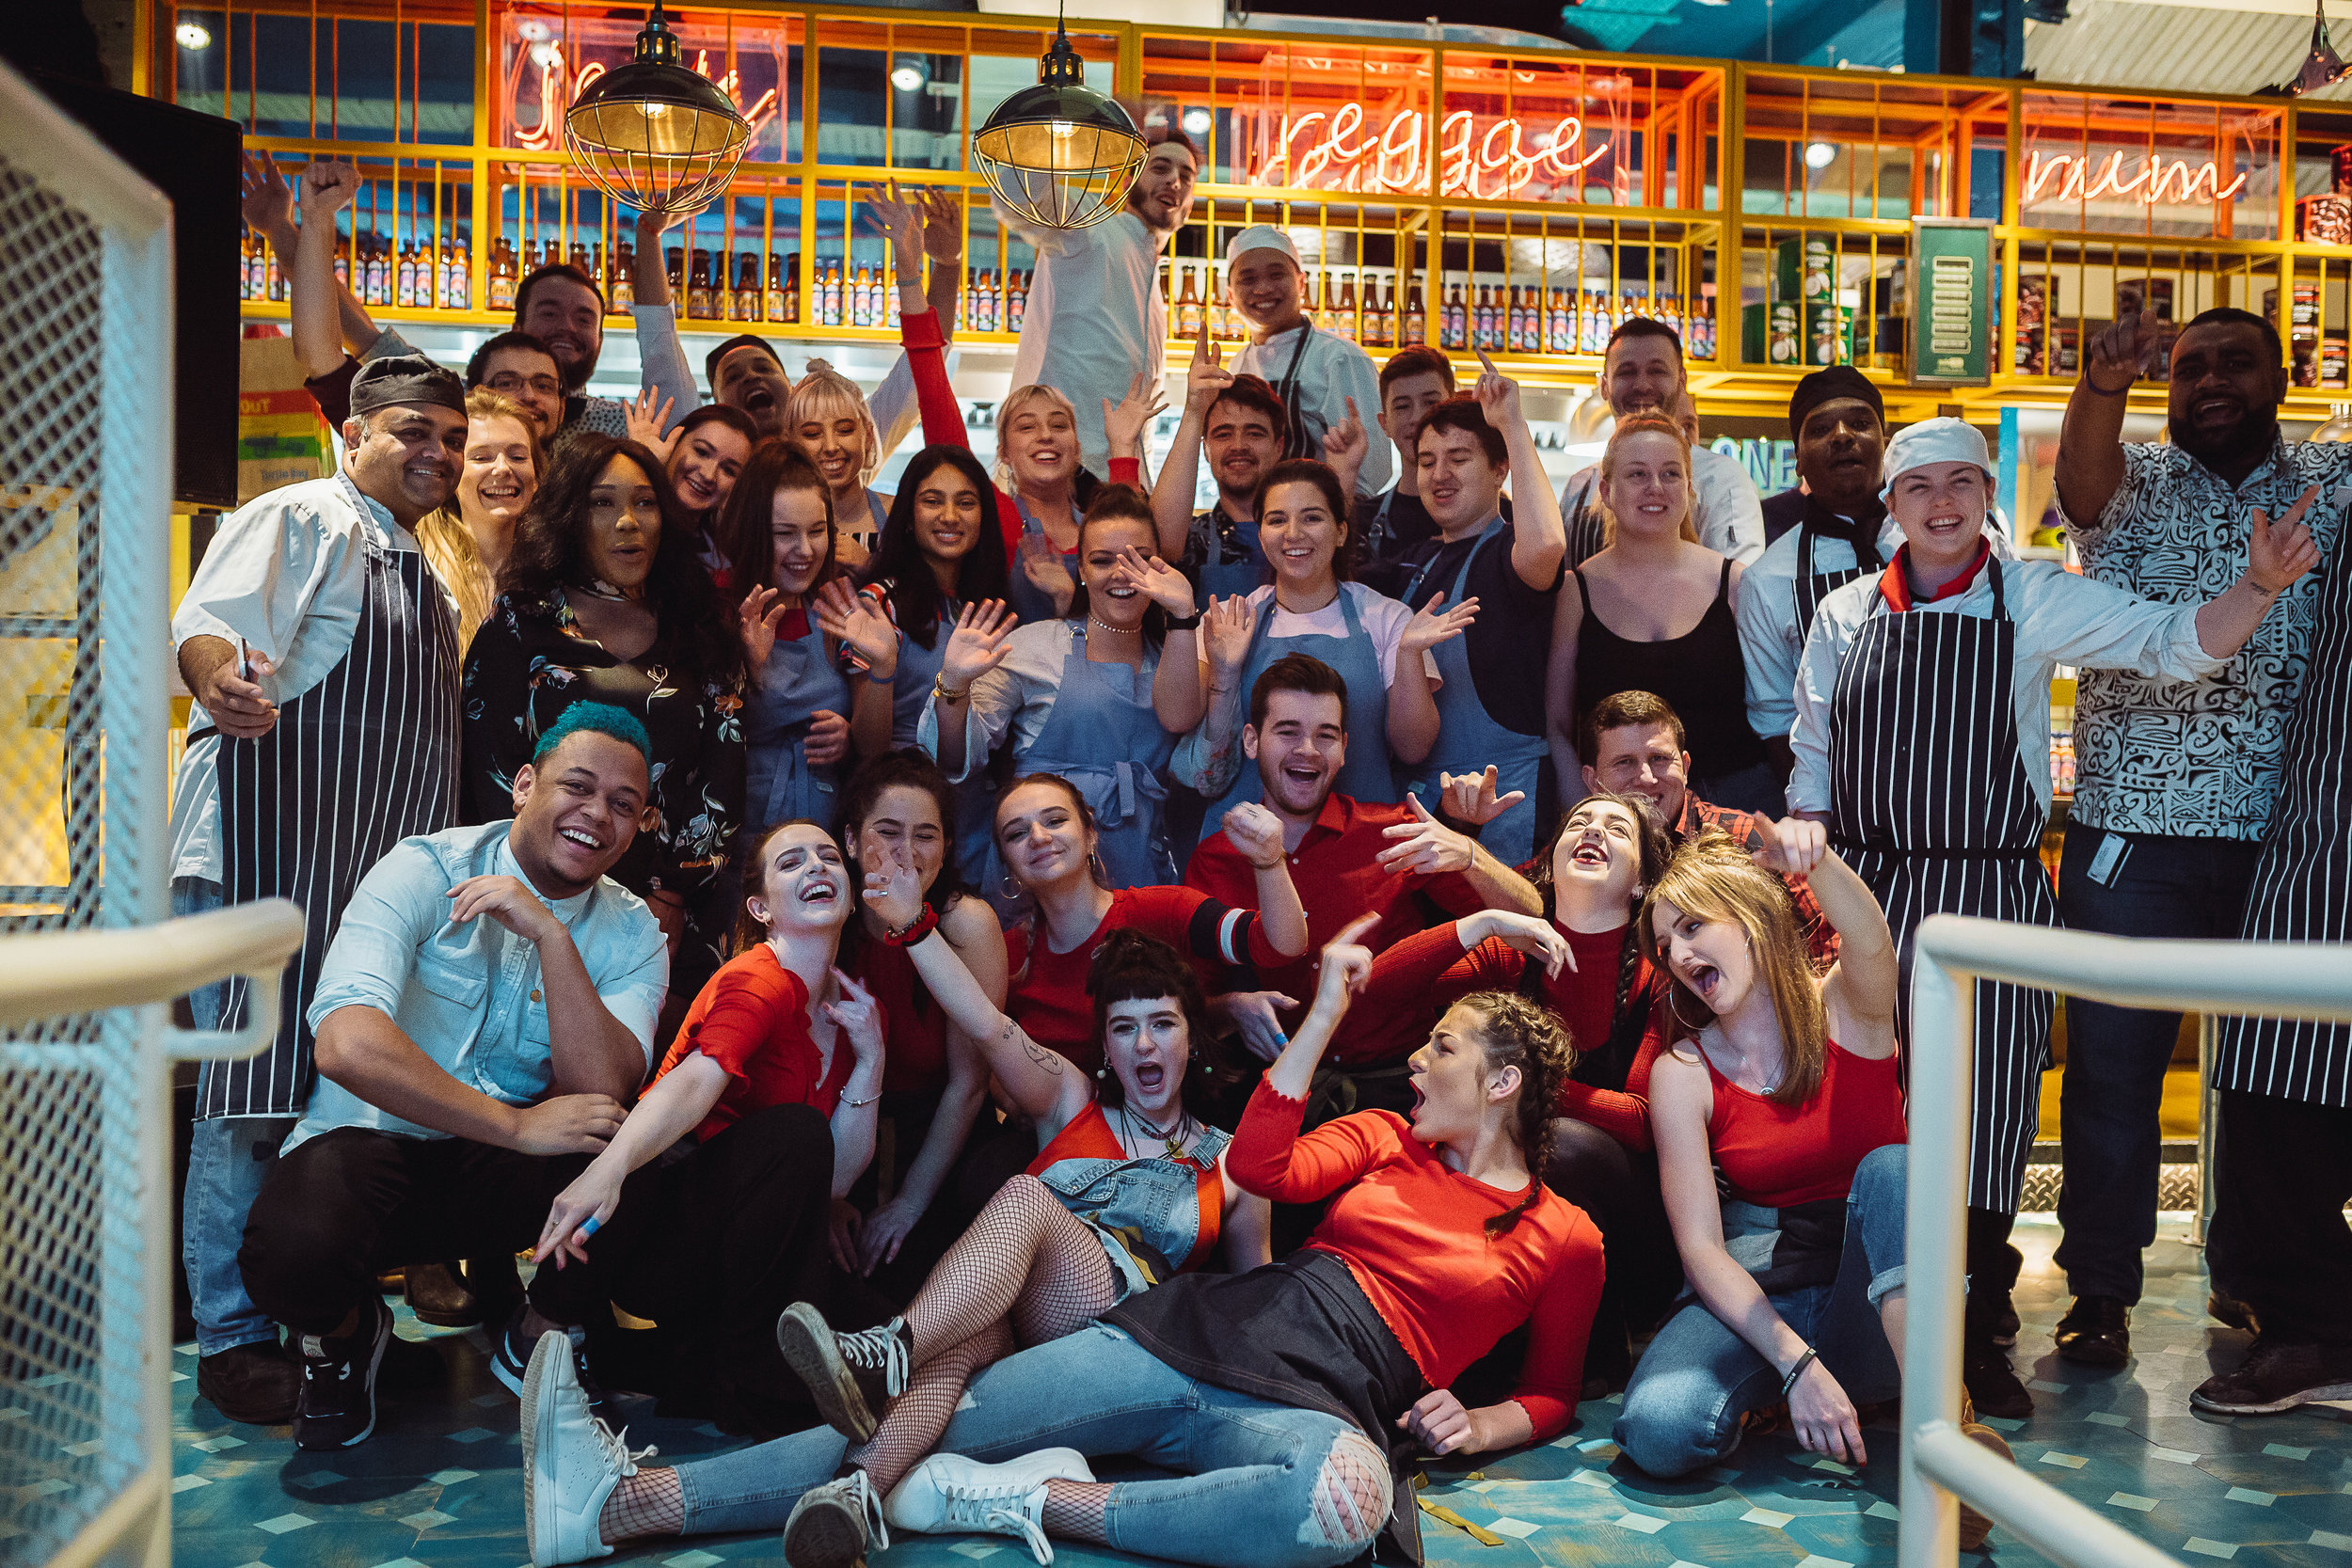 A great team will welcome you to Turtle Bay Winchester